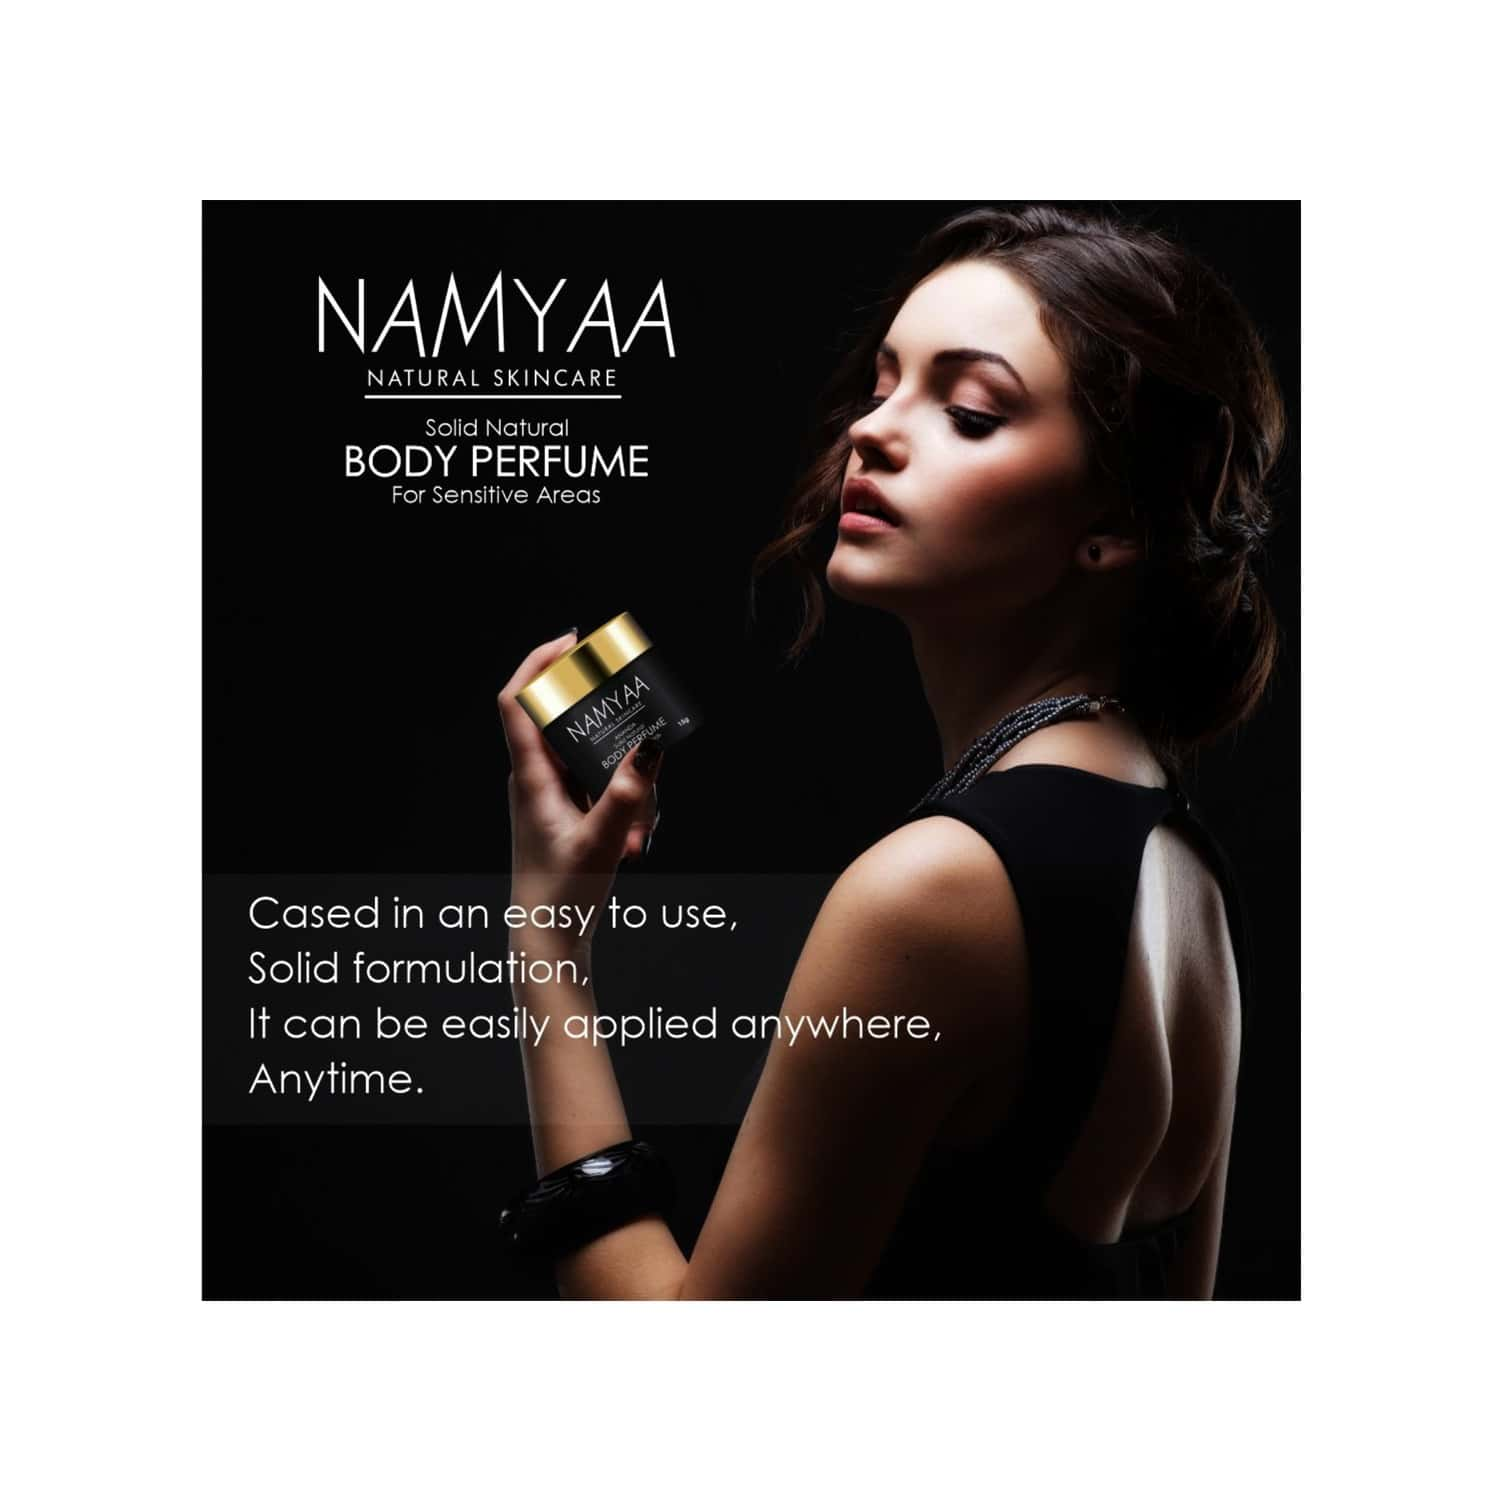 Namyaa Solid Natural Body Perfume For Underarms, Inner Thigh, Knee And Bikini Area, Sensitive Areas - 15 G (pack Of 3)